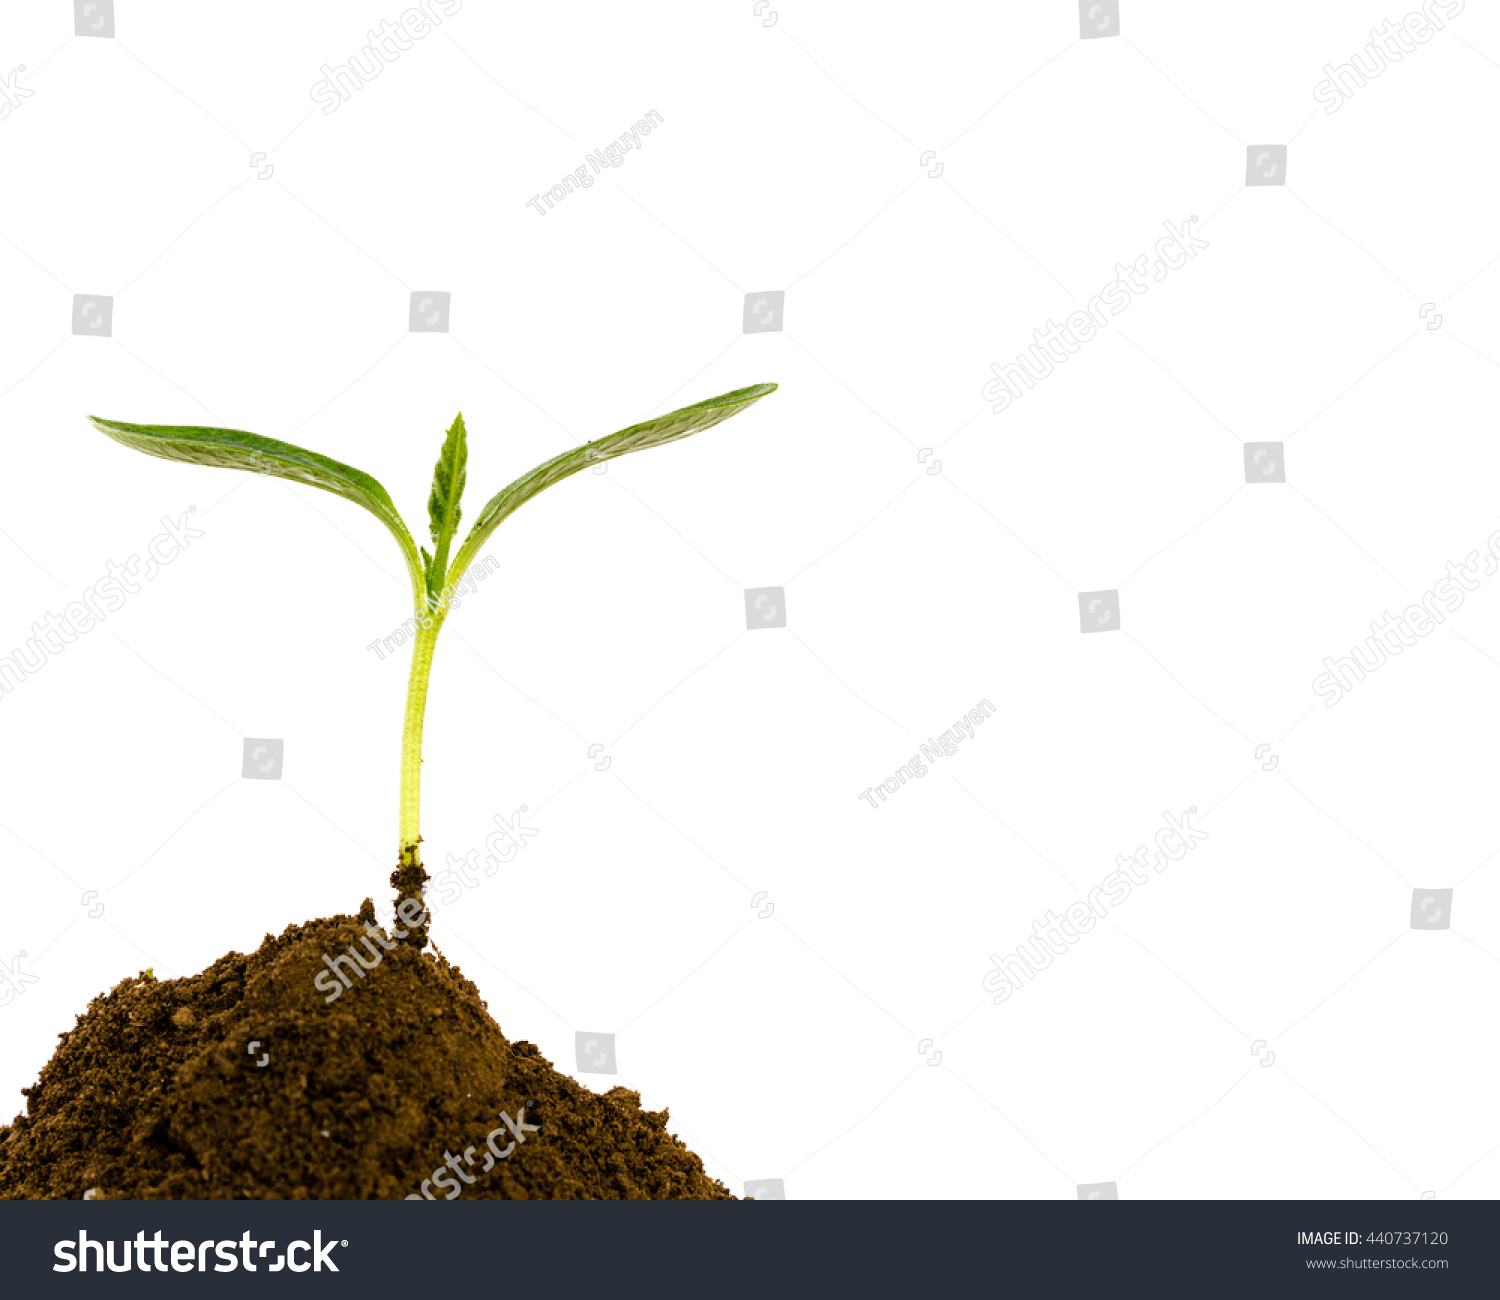 image of fresh green plant in dirt isolated over white